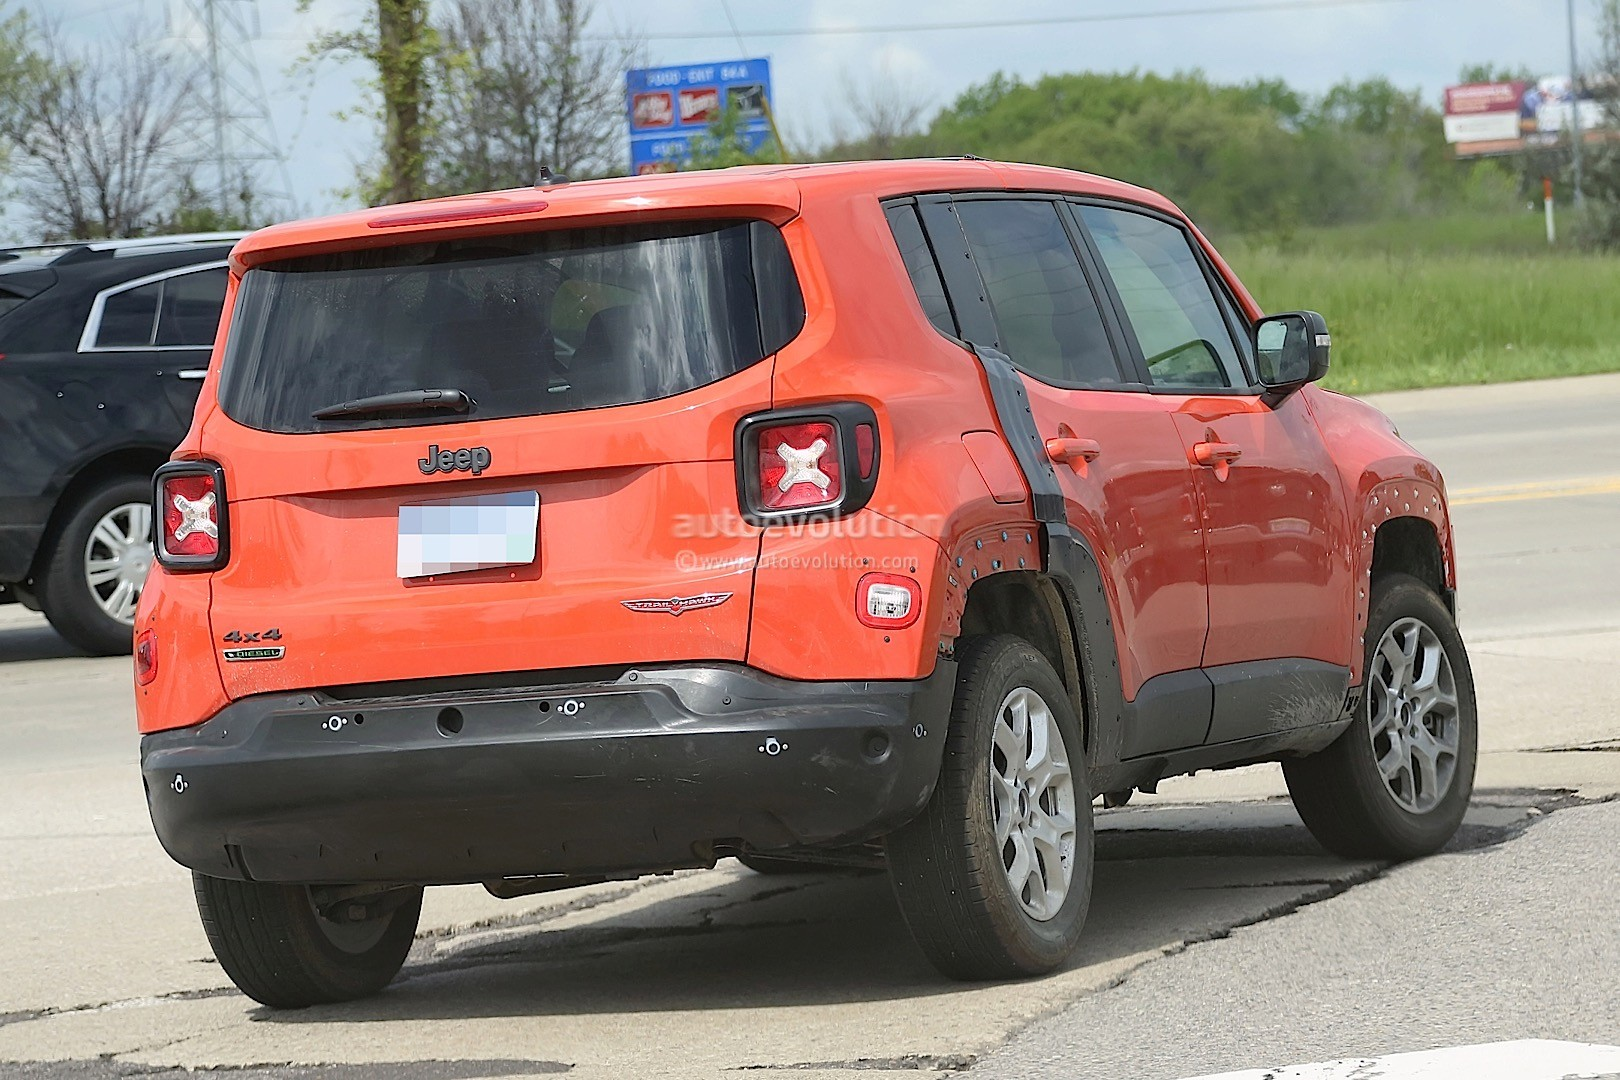 2017 jeep c suv prototype spied wearing renegade body shell autoevolution. Black Bedroom Furniture Sets. Home Design Ideas